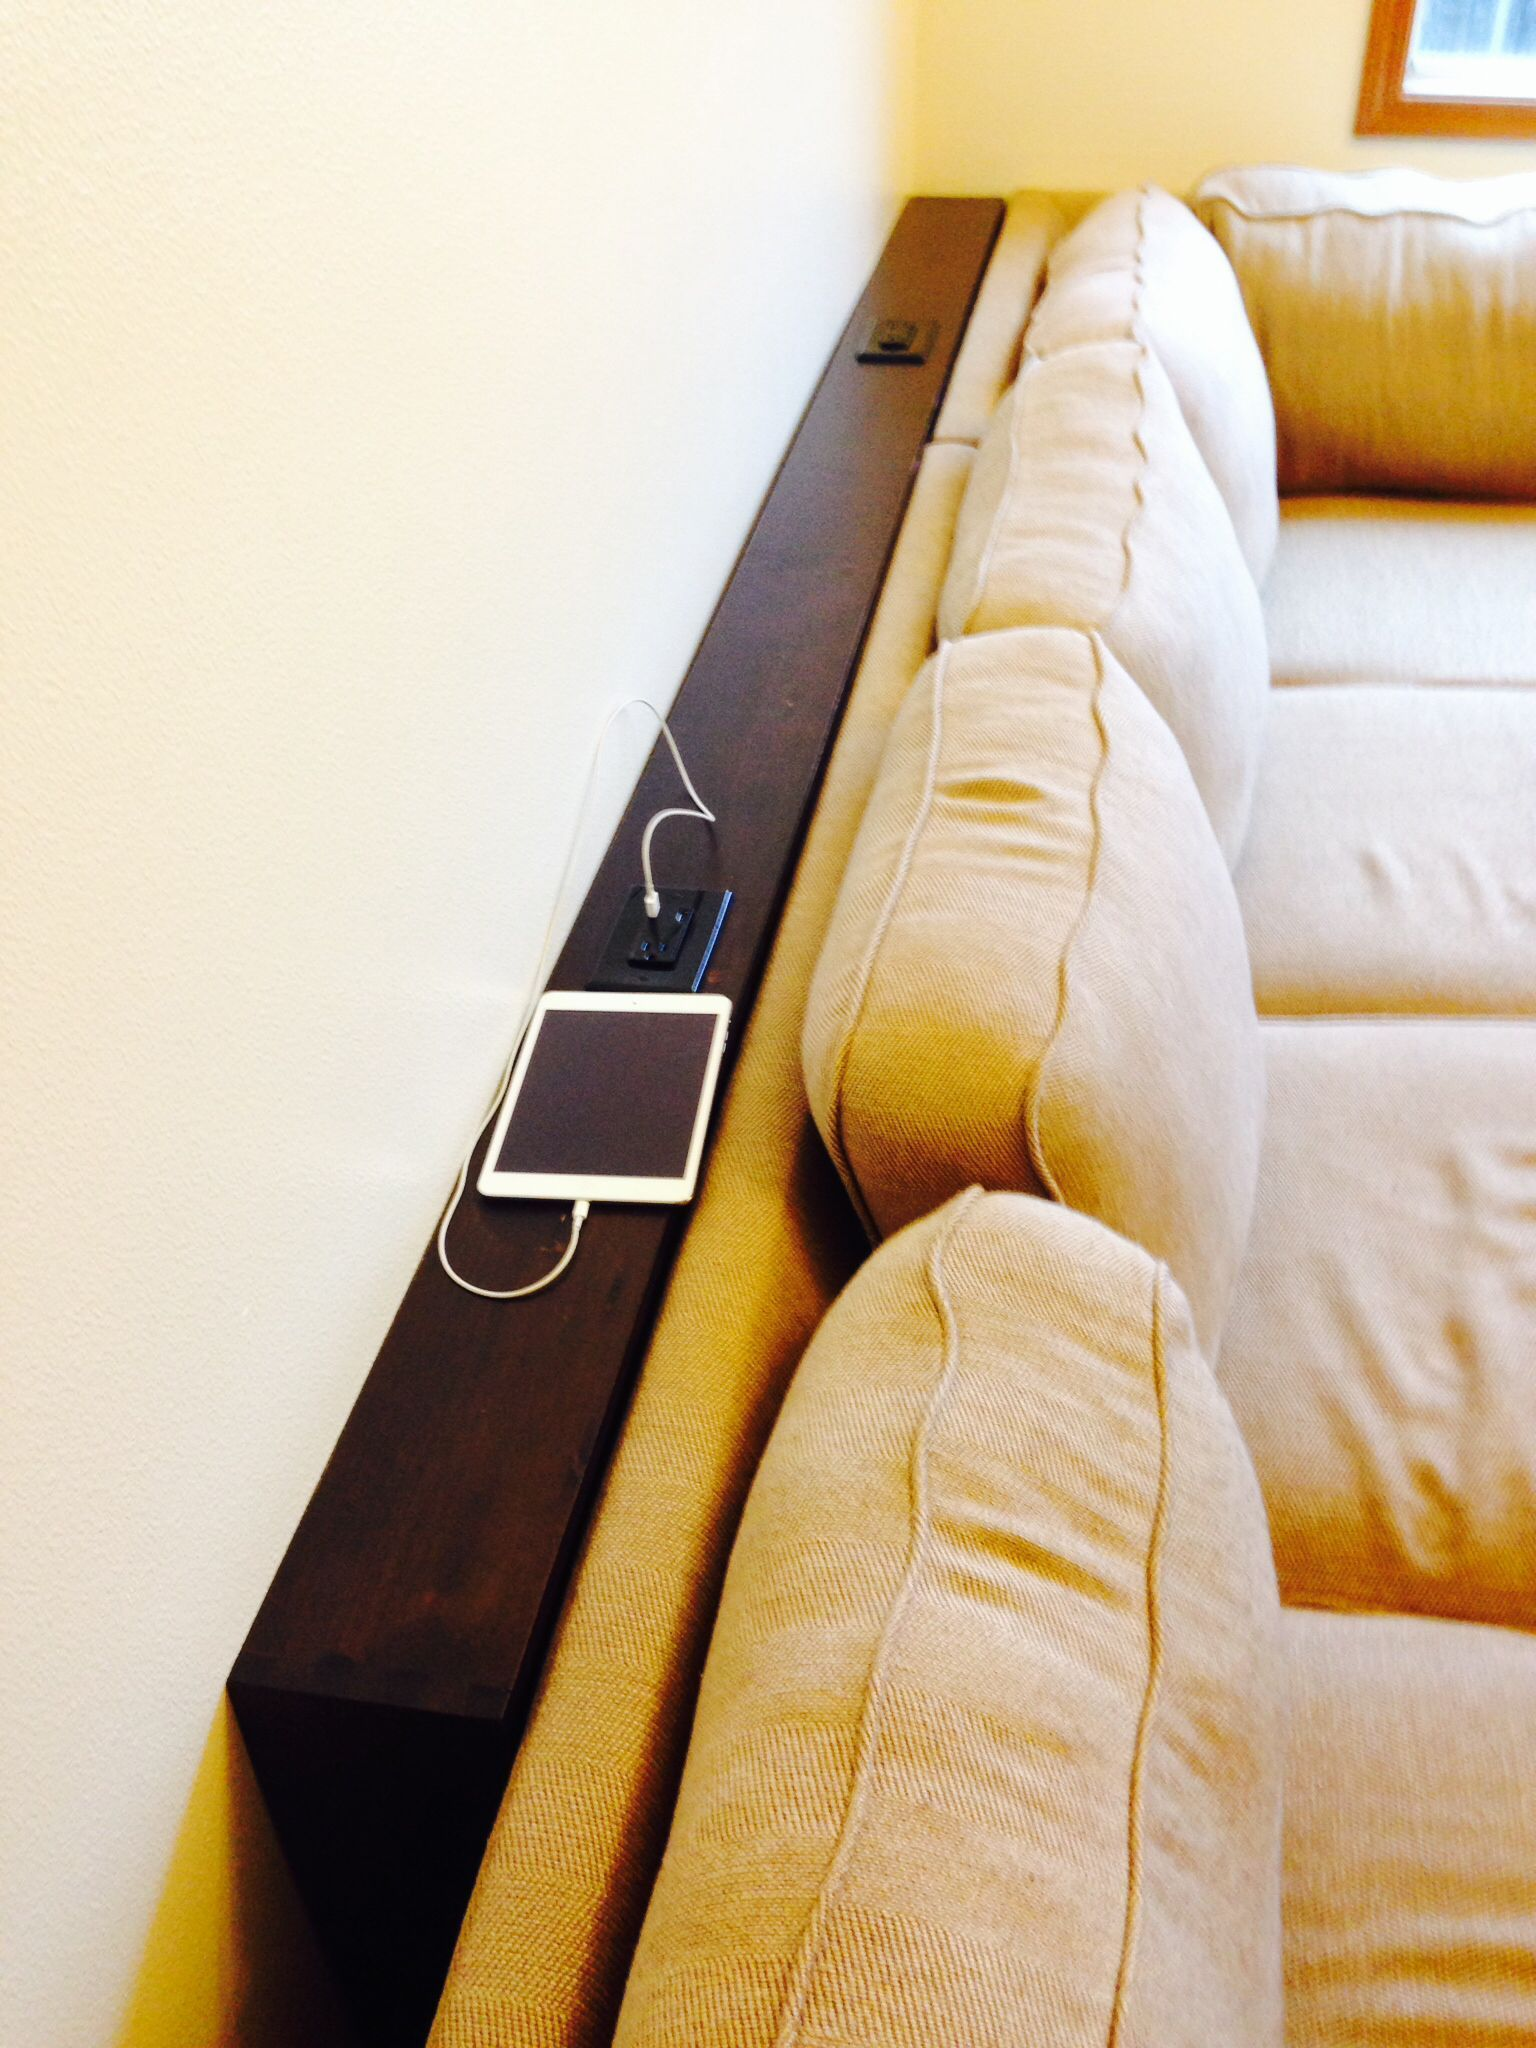 Behind The Couch Table Added Some Usb Outlet Receptacles For Awesomeness Diysofatable Homefurniturecouches Farmhouse Sofa Table Diy Sofa Table Table Behind Couch